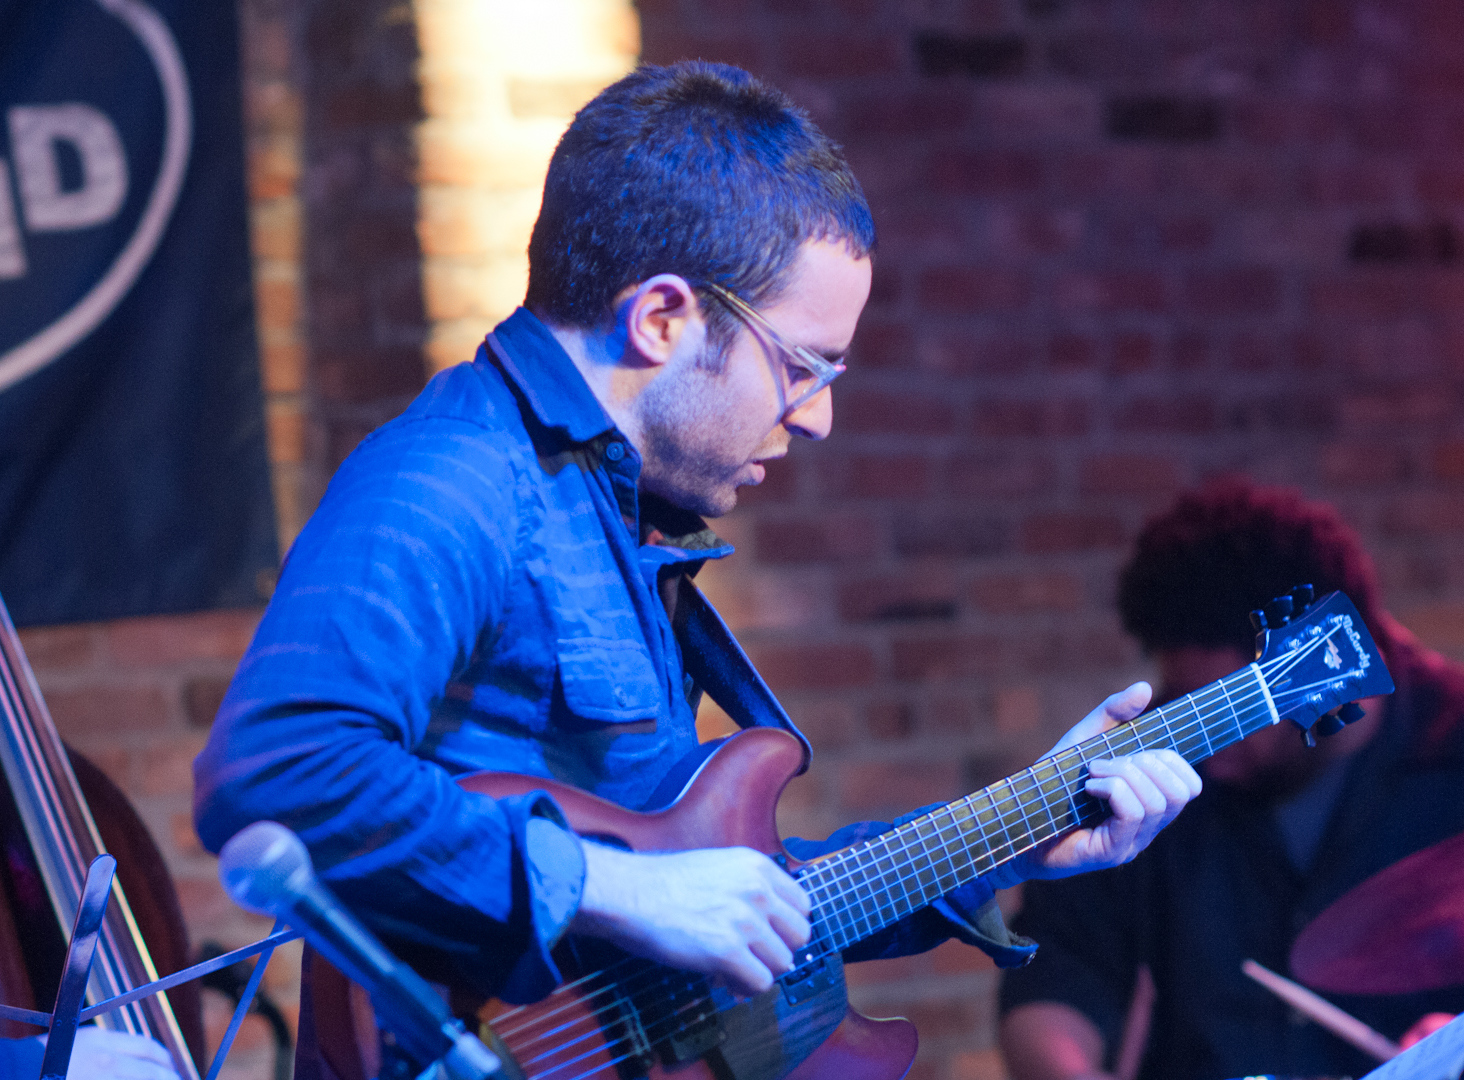 Todd Neufeld with Tyshawn Sorey's Oblique at the Winter Jazzfest 2012